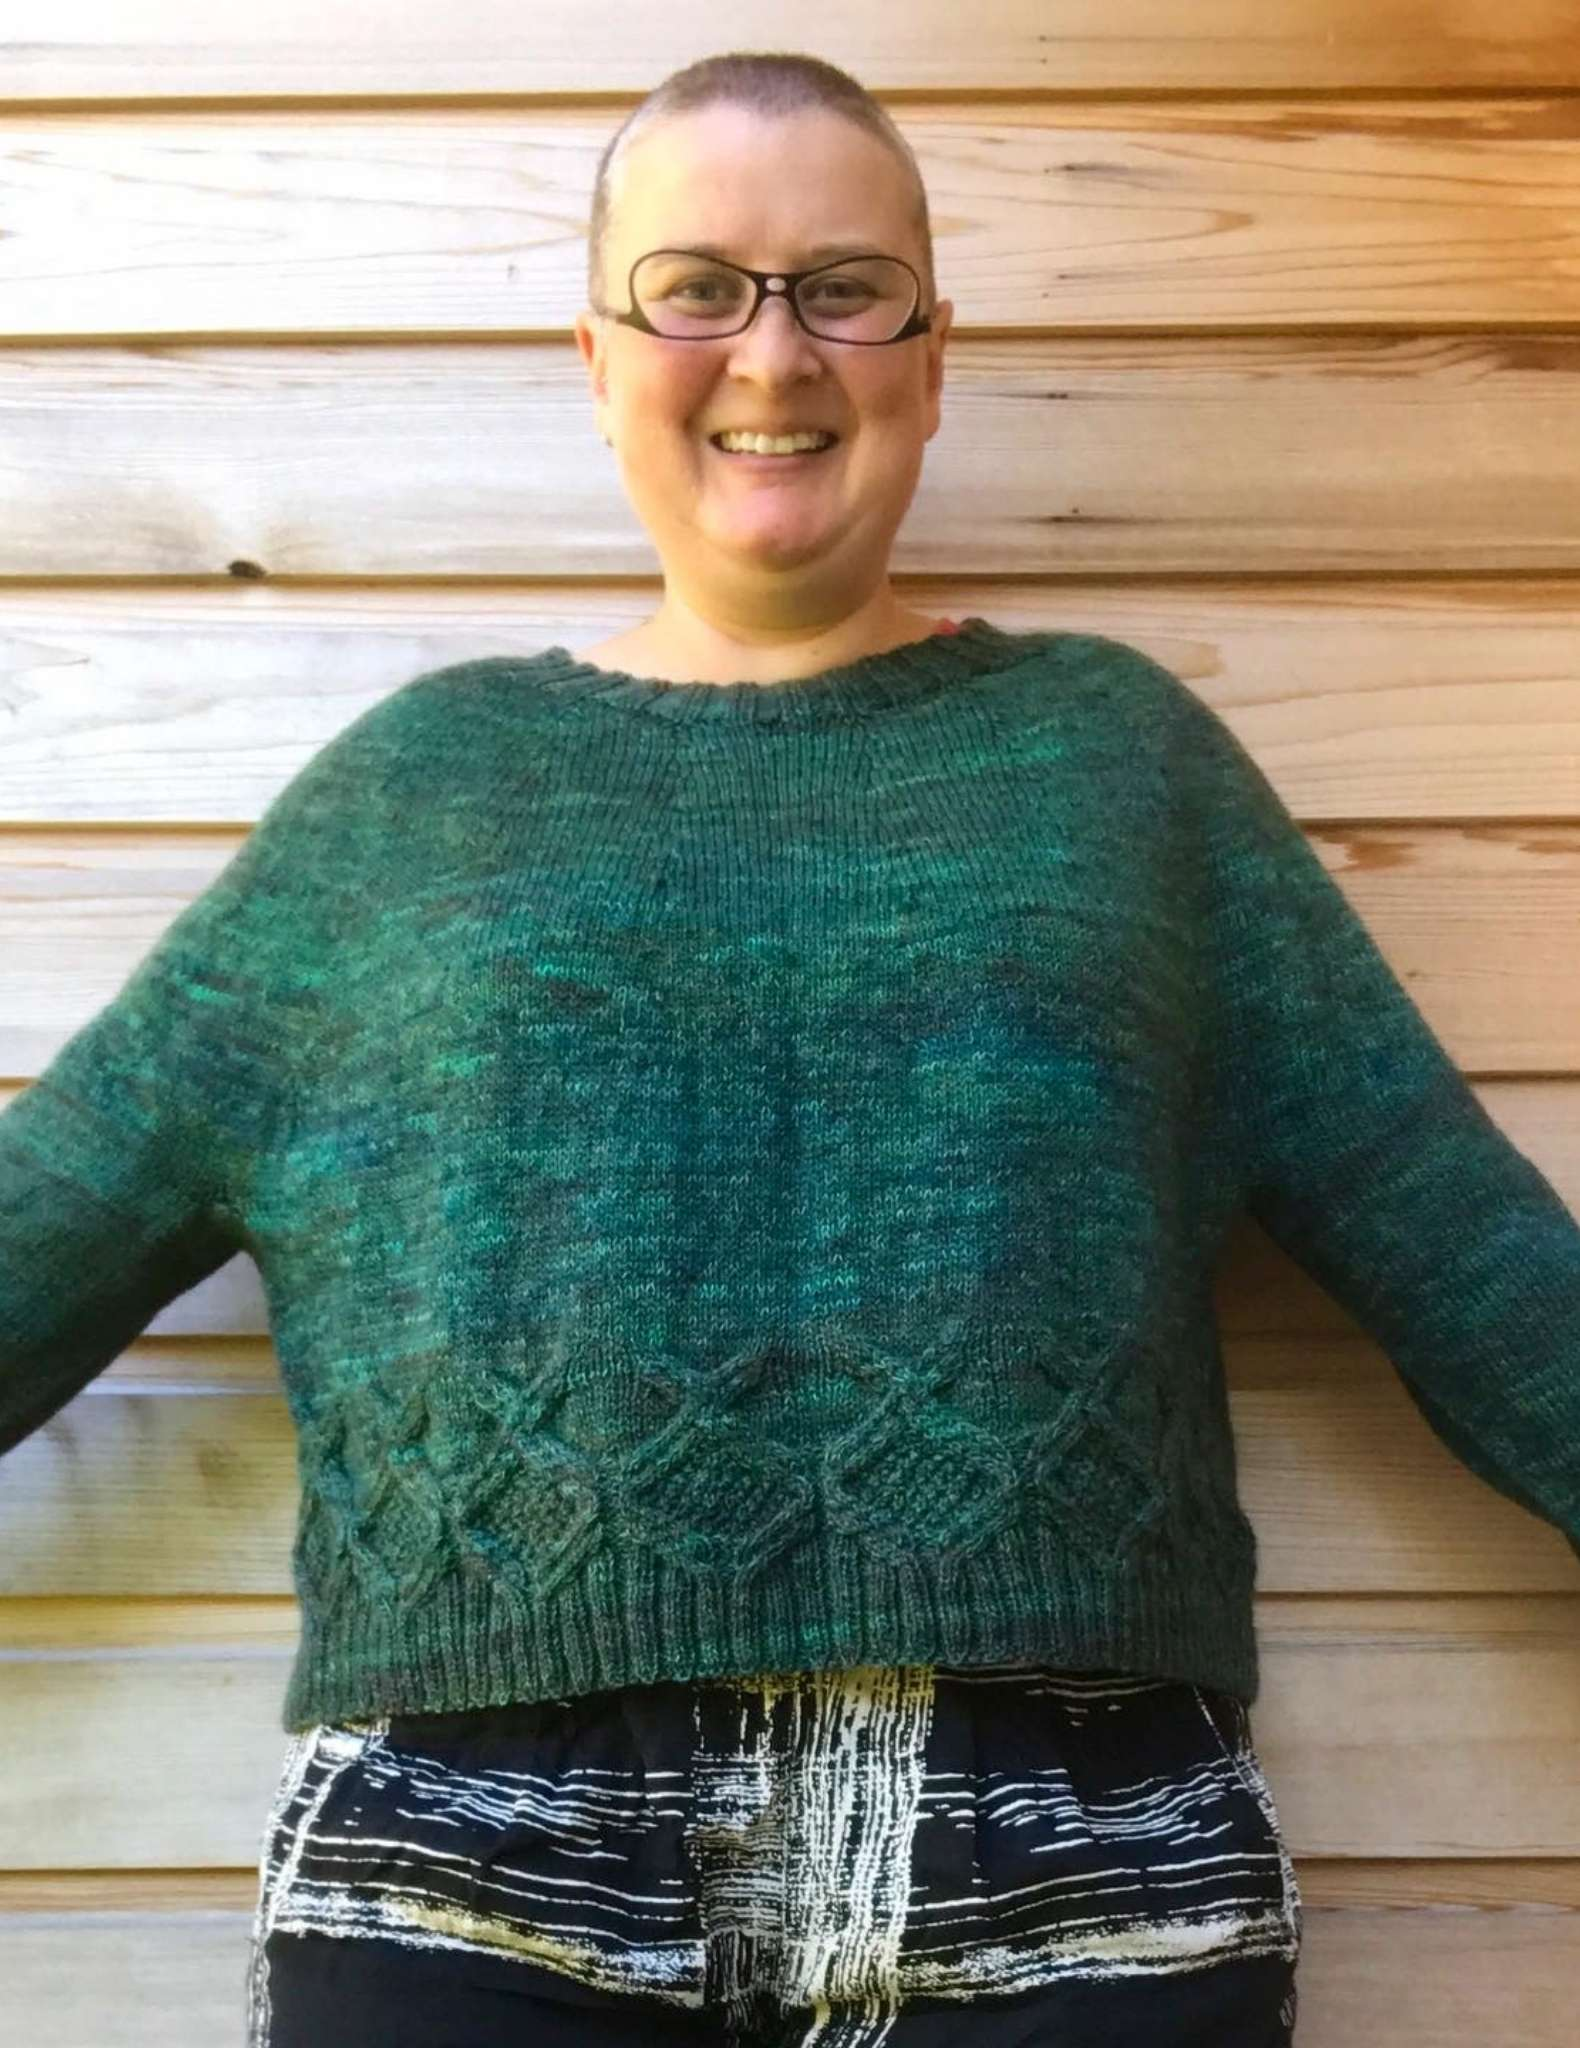 a smiling white, fat, and middle-aged model standing and wearing a green sweater with arms outstretched